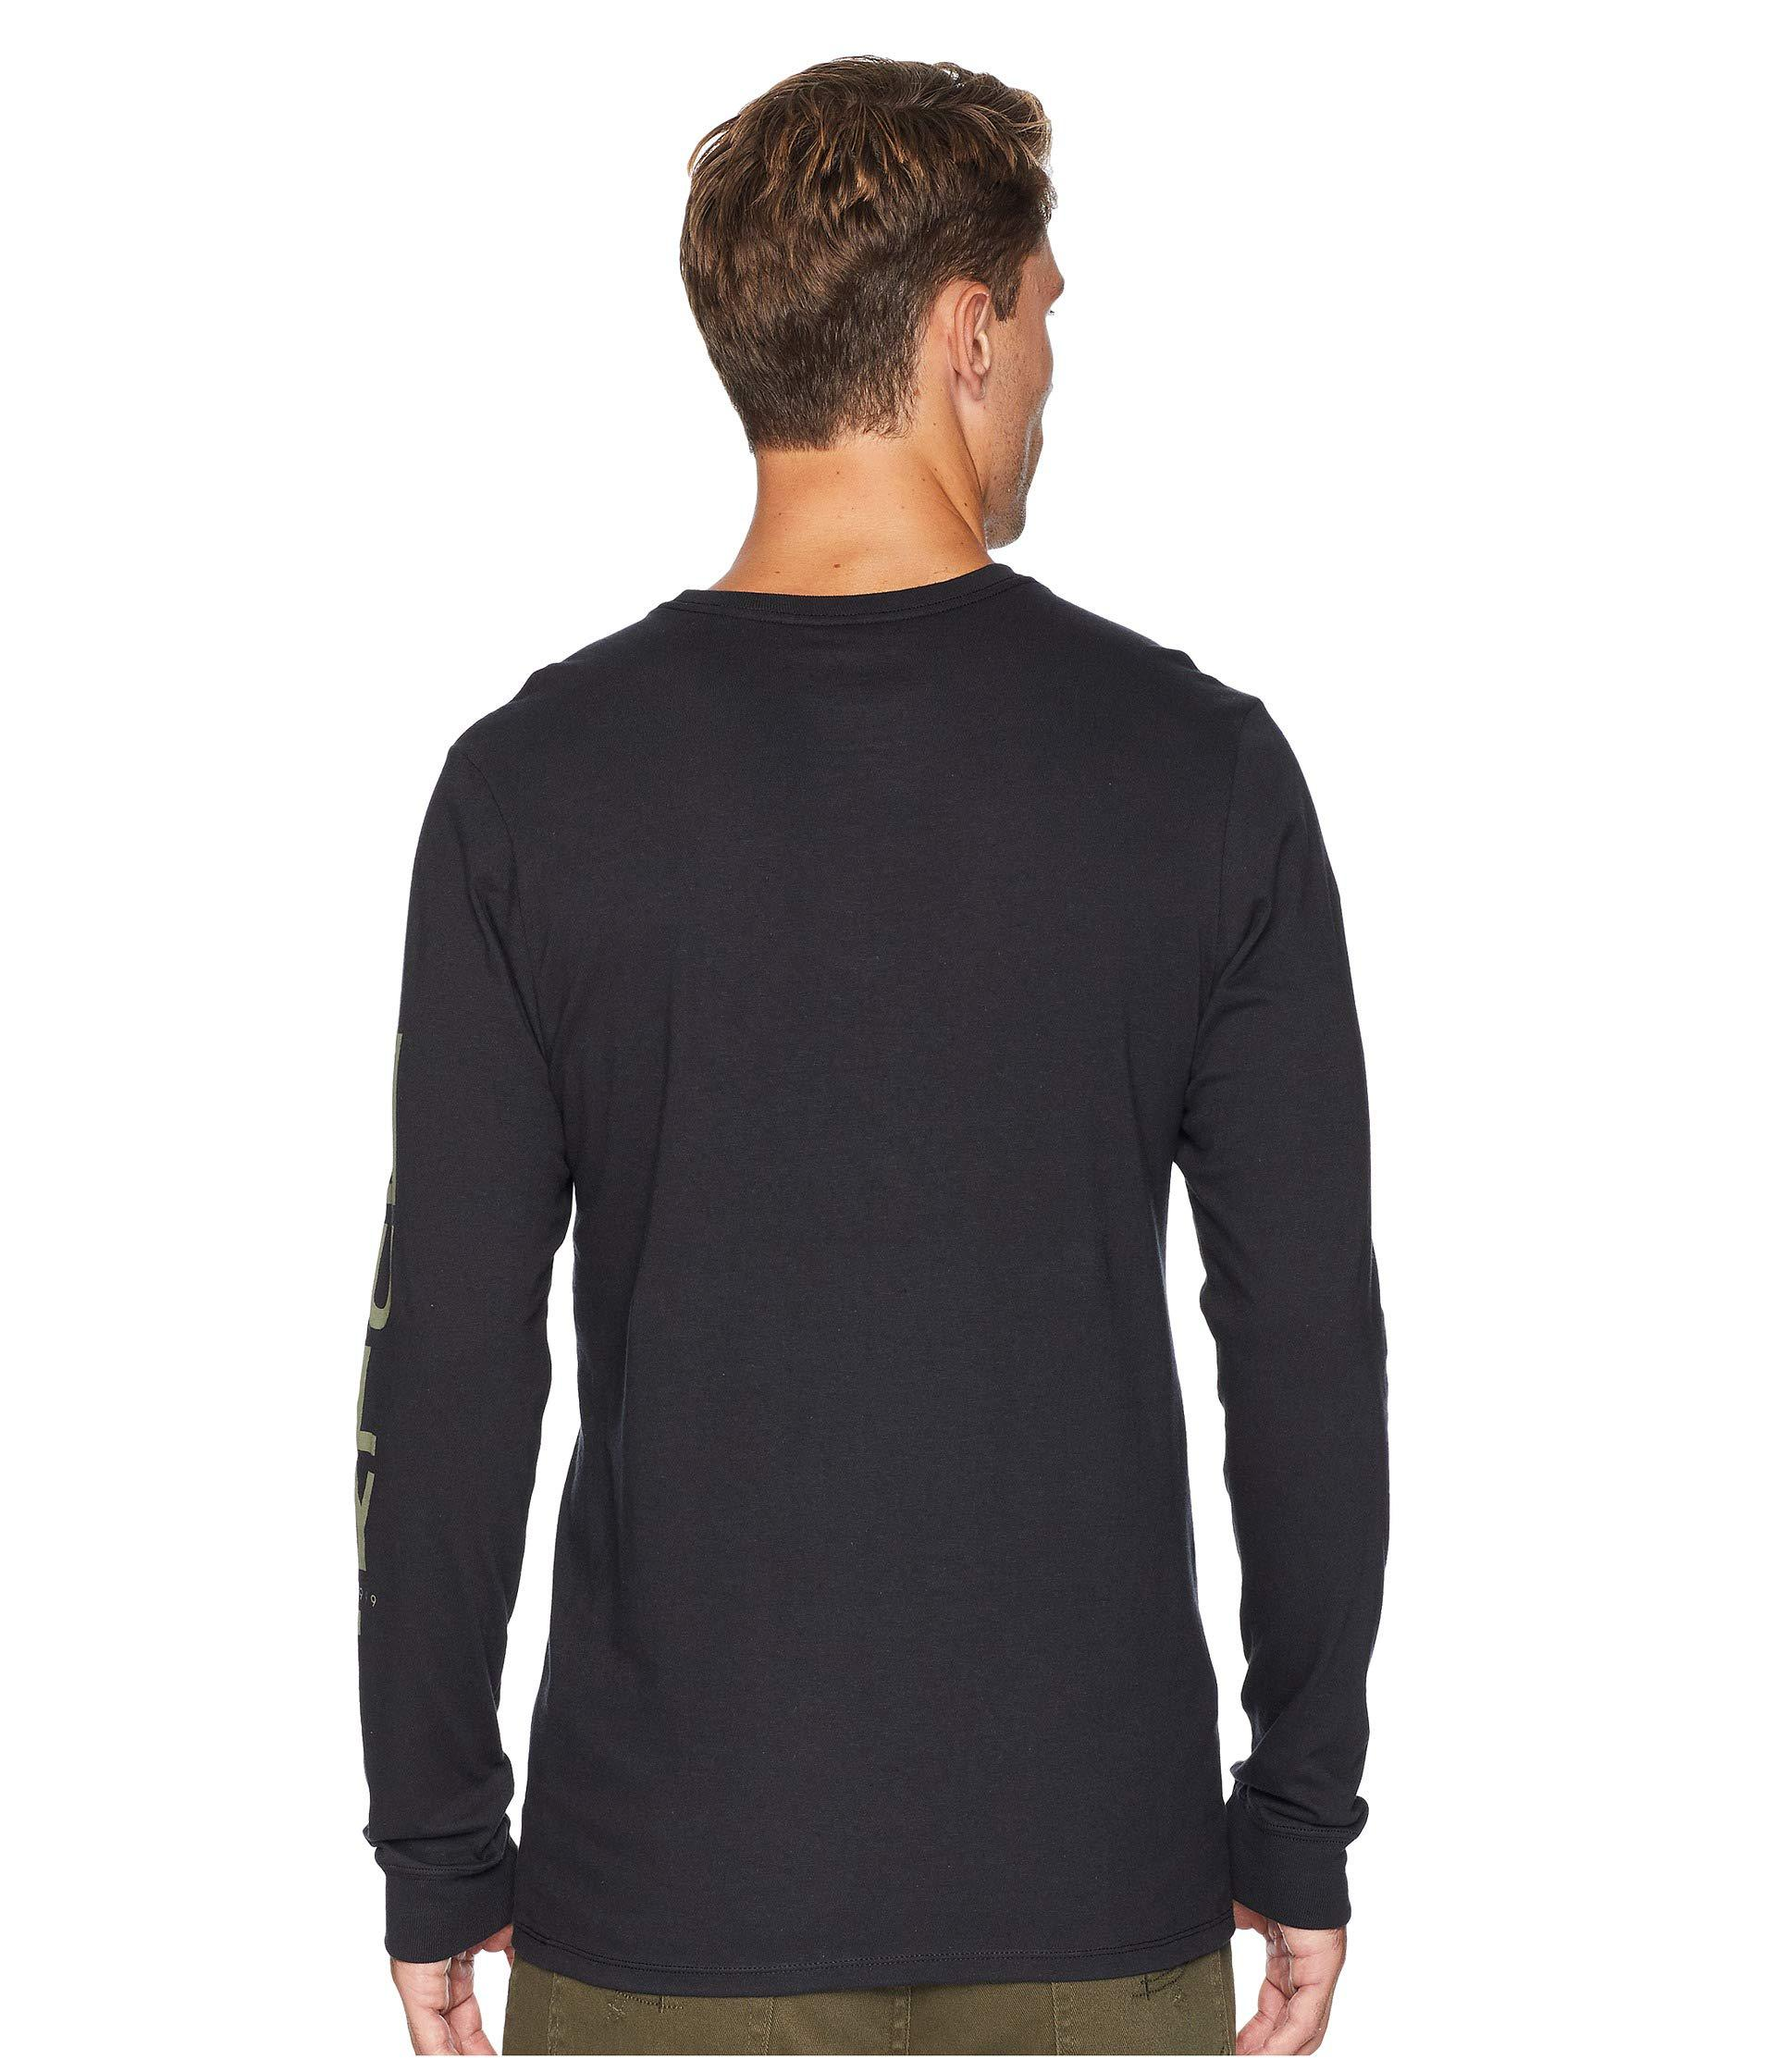 fb00c407 Hurley Core Arm Long Sleeve Tee (white) Men's T Shirt in Black for ...